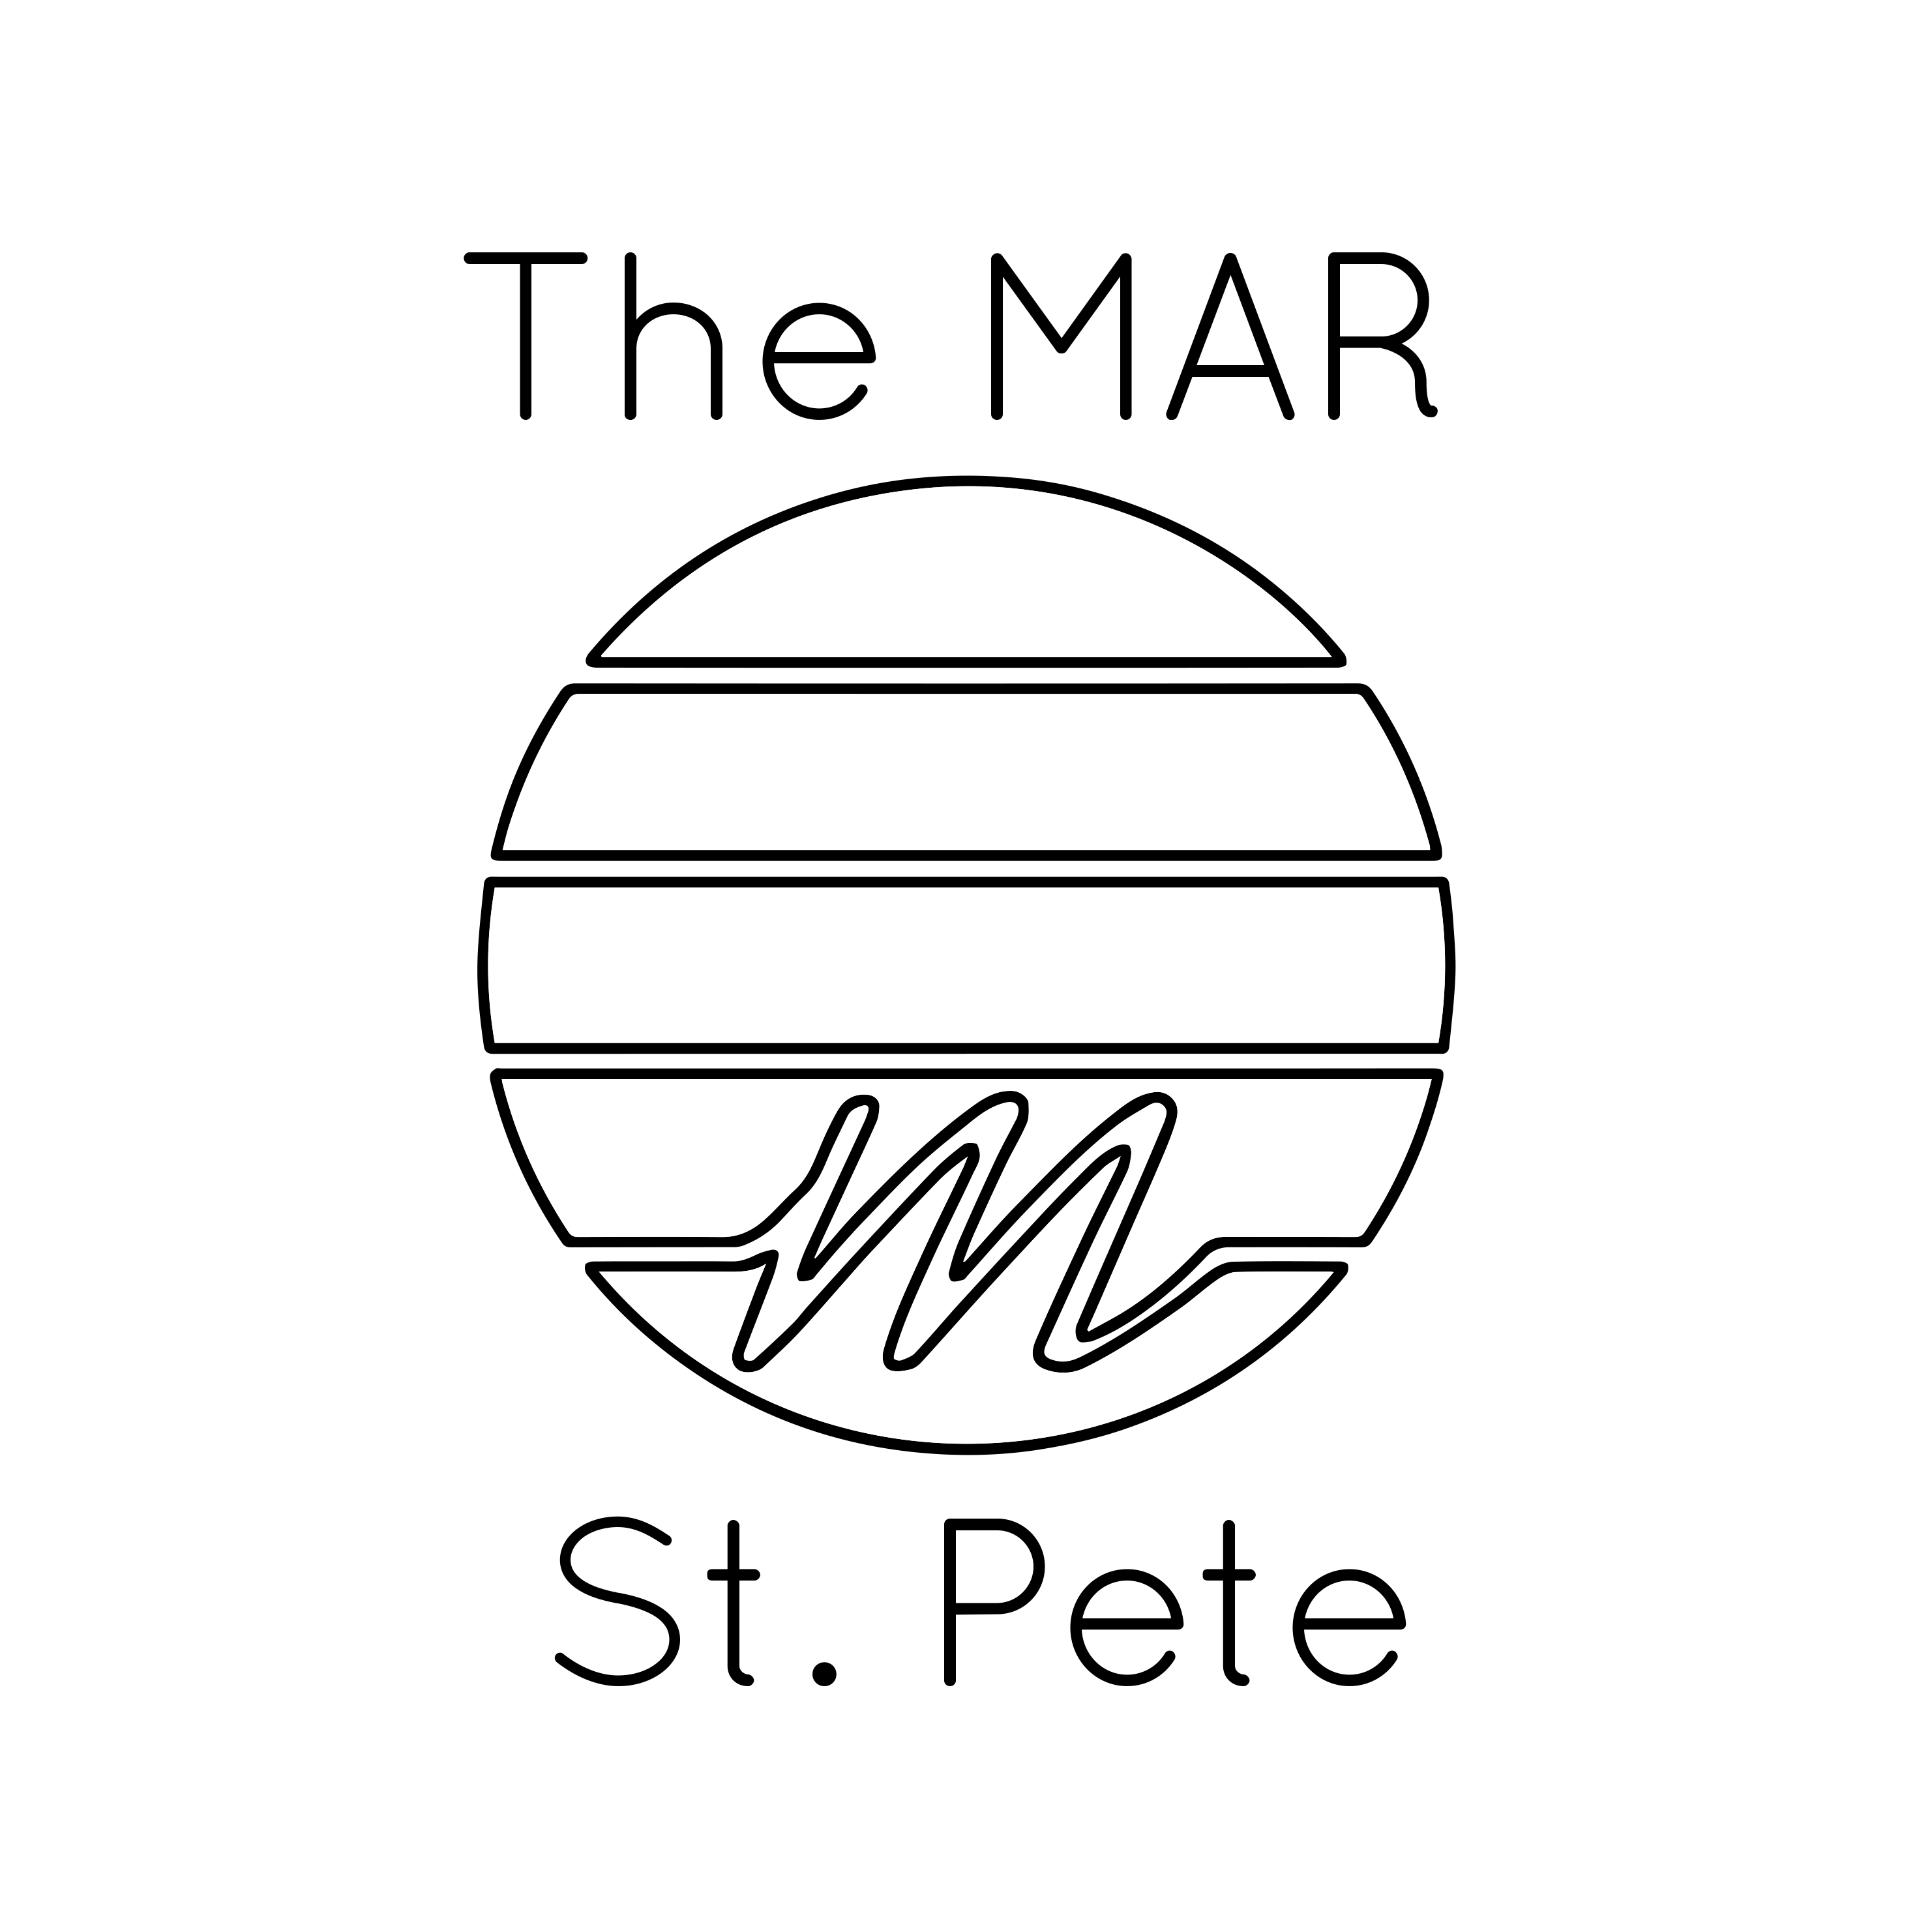 The MAR St. Pete